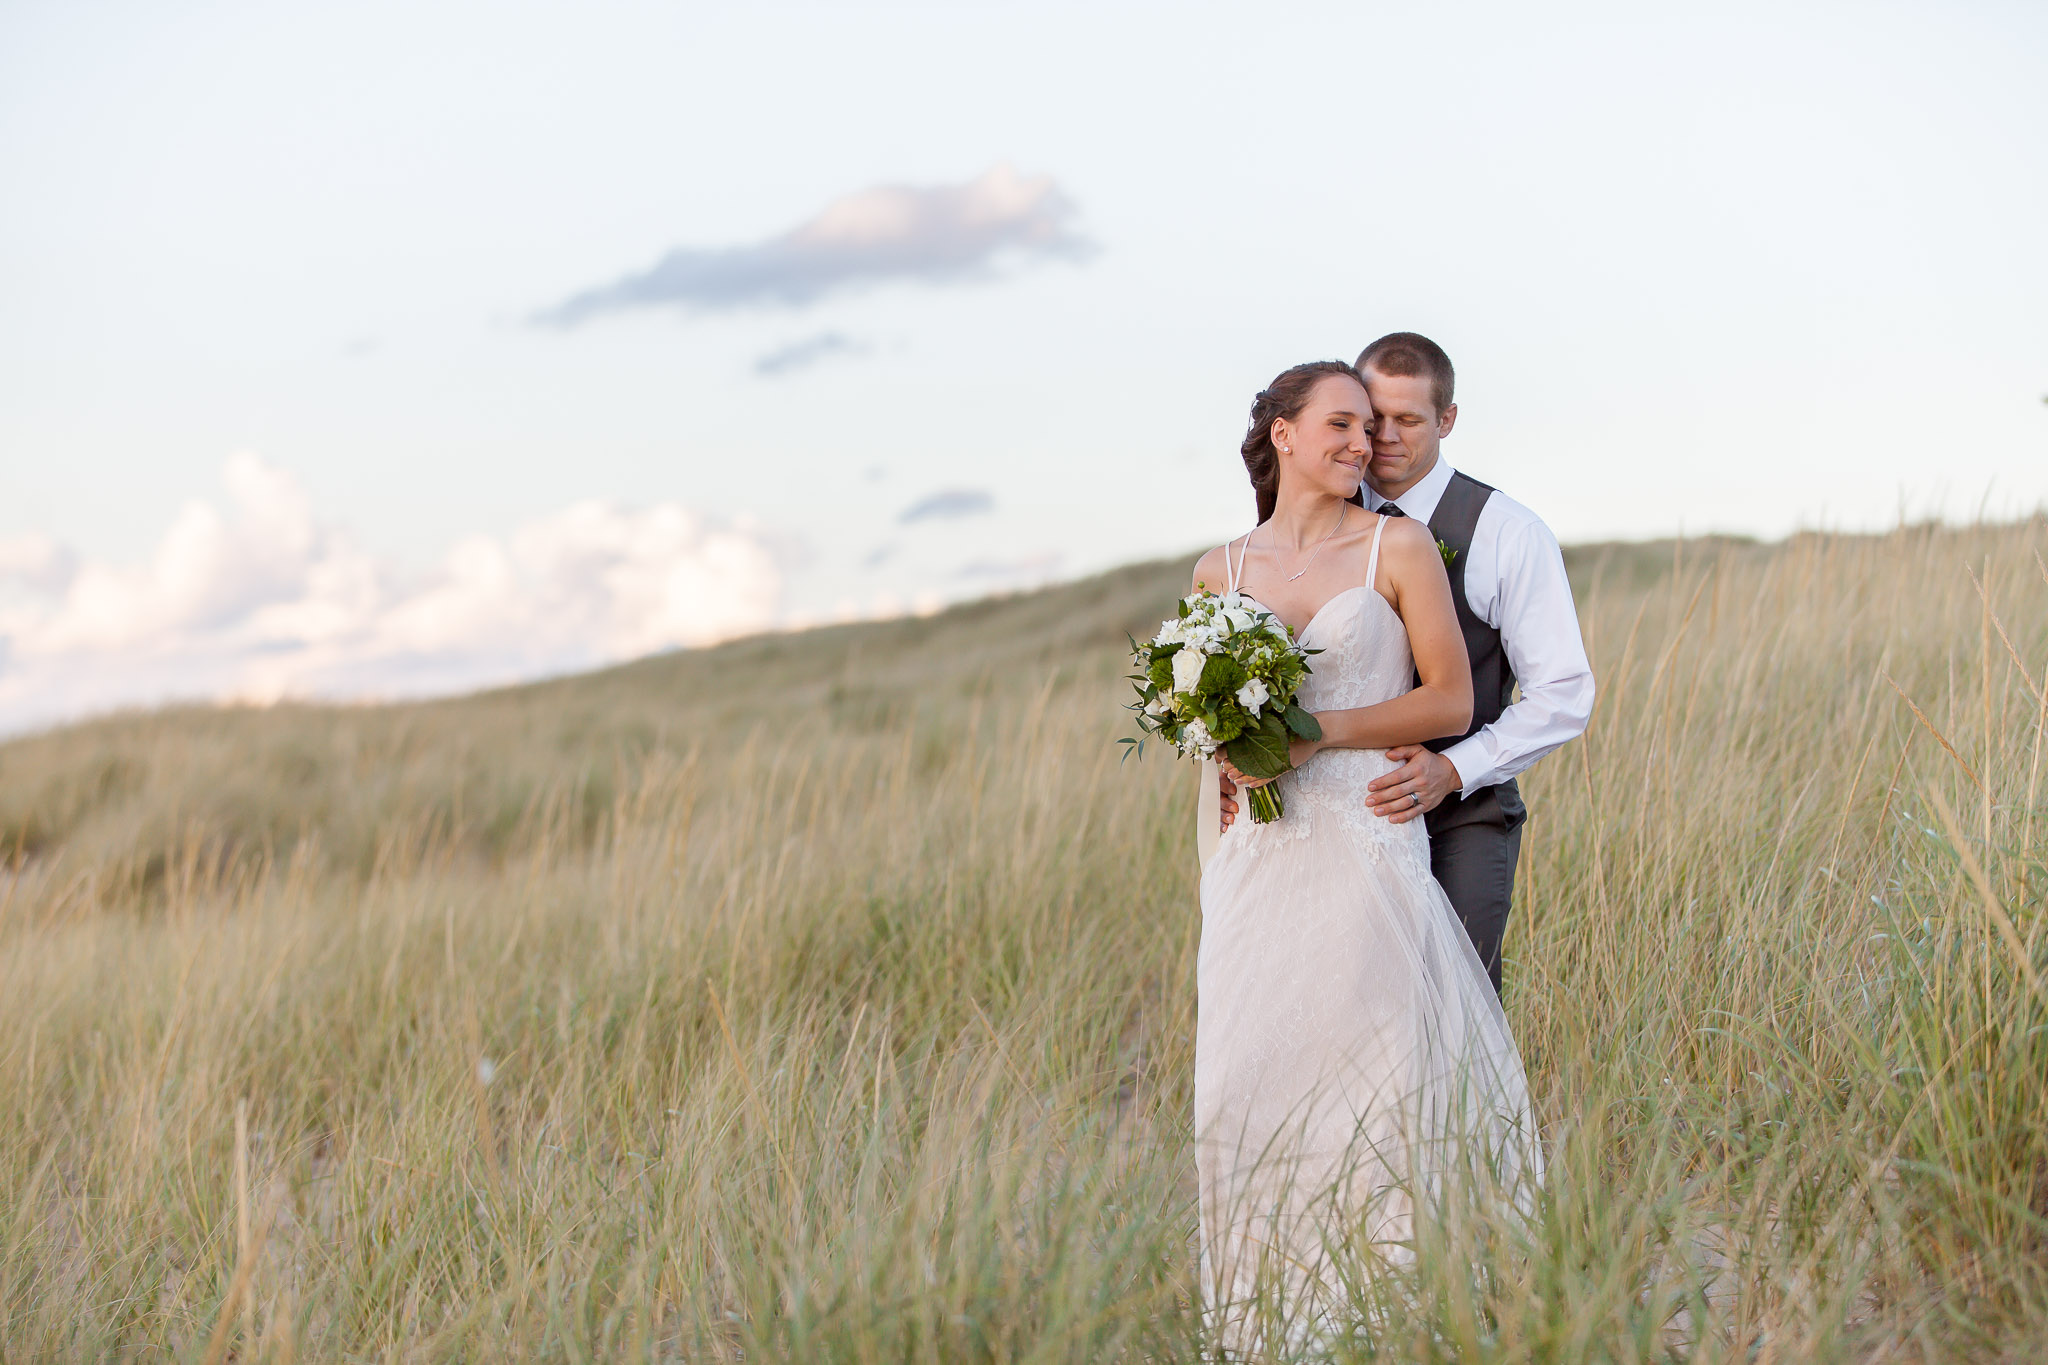 Wedding Couple in New Buffalo Beach - New Buffalo Michigan Wedding Photographer - Toni Jay Photography